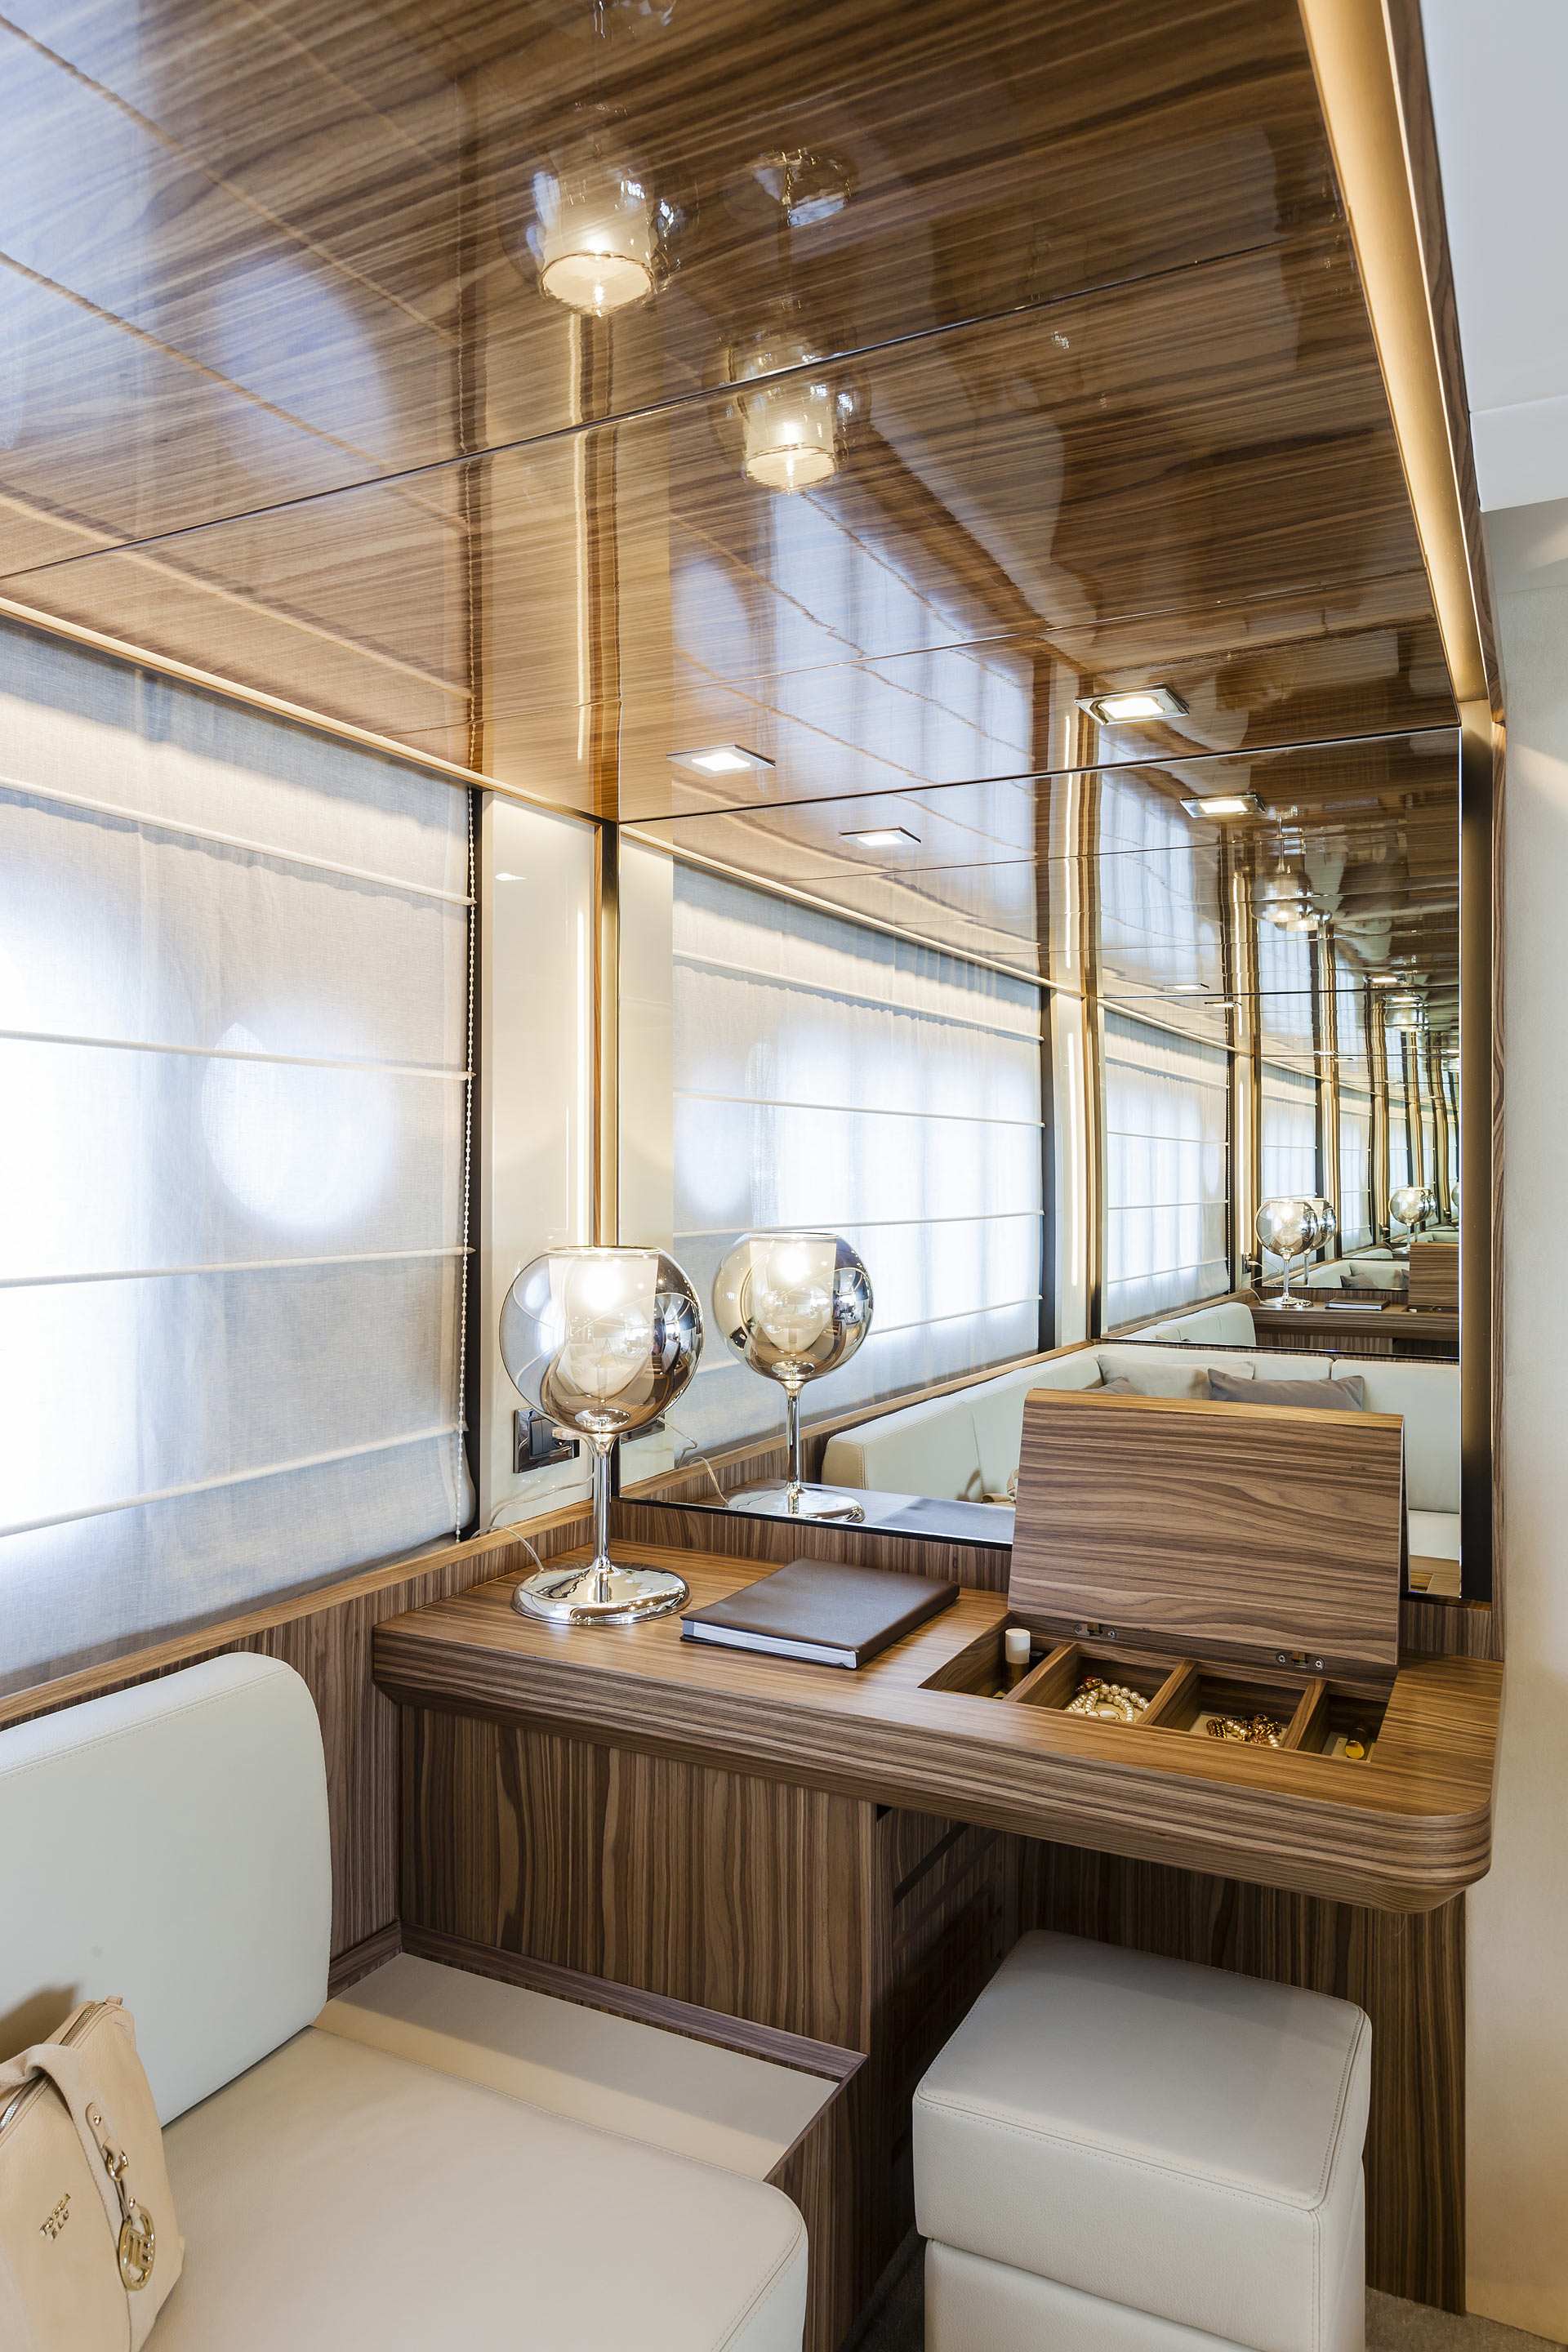 Absolute 60 Fly Luxury Yacht Vanity Mirror